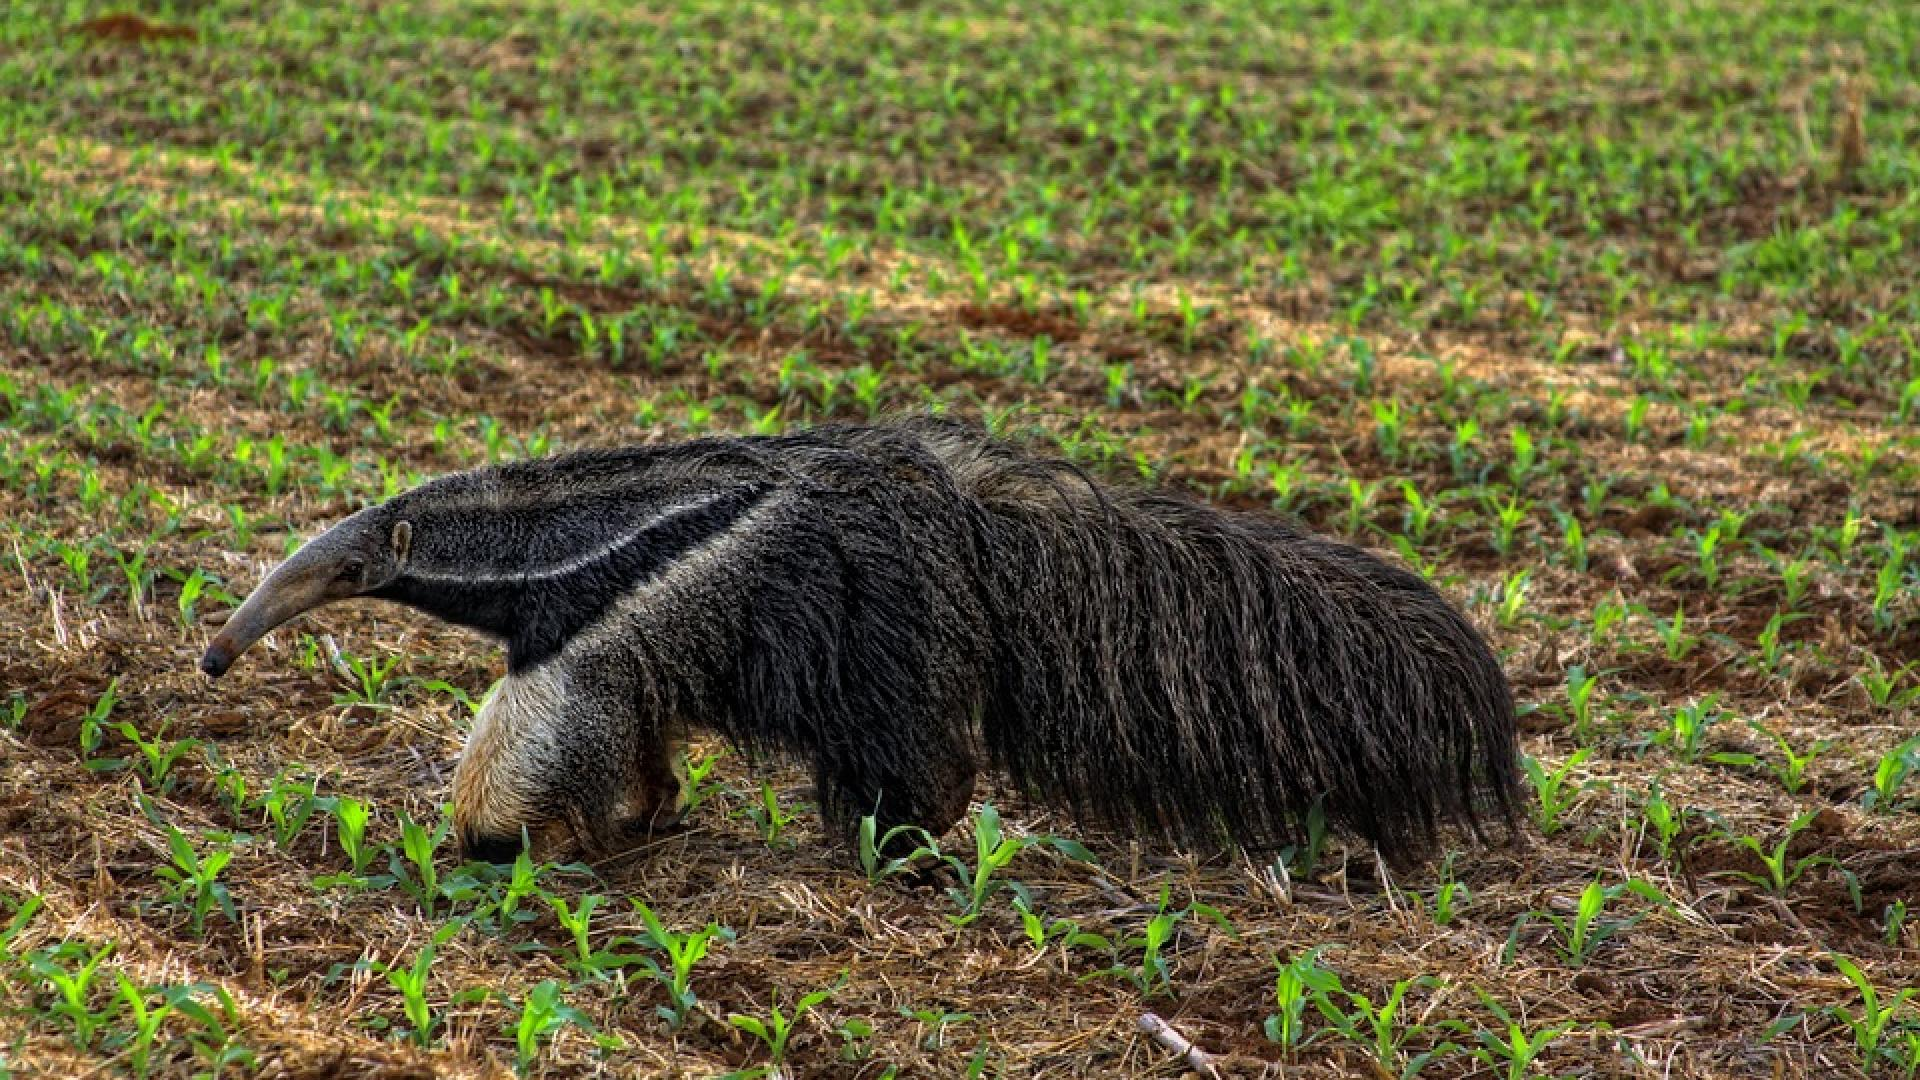 A Giant Anteater (Myrmecophaga tridactyla) crossing a soy field in the Cerrado